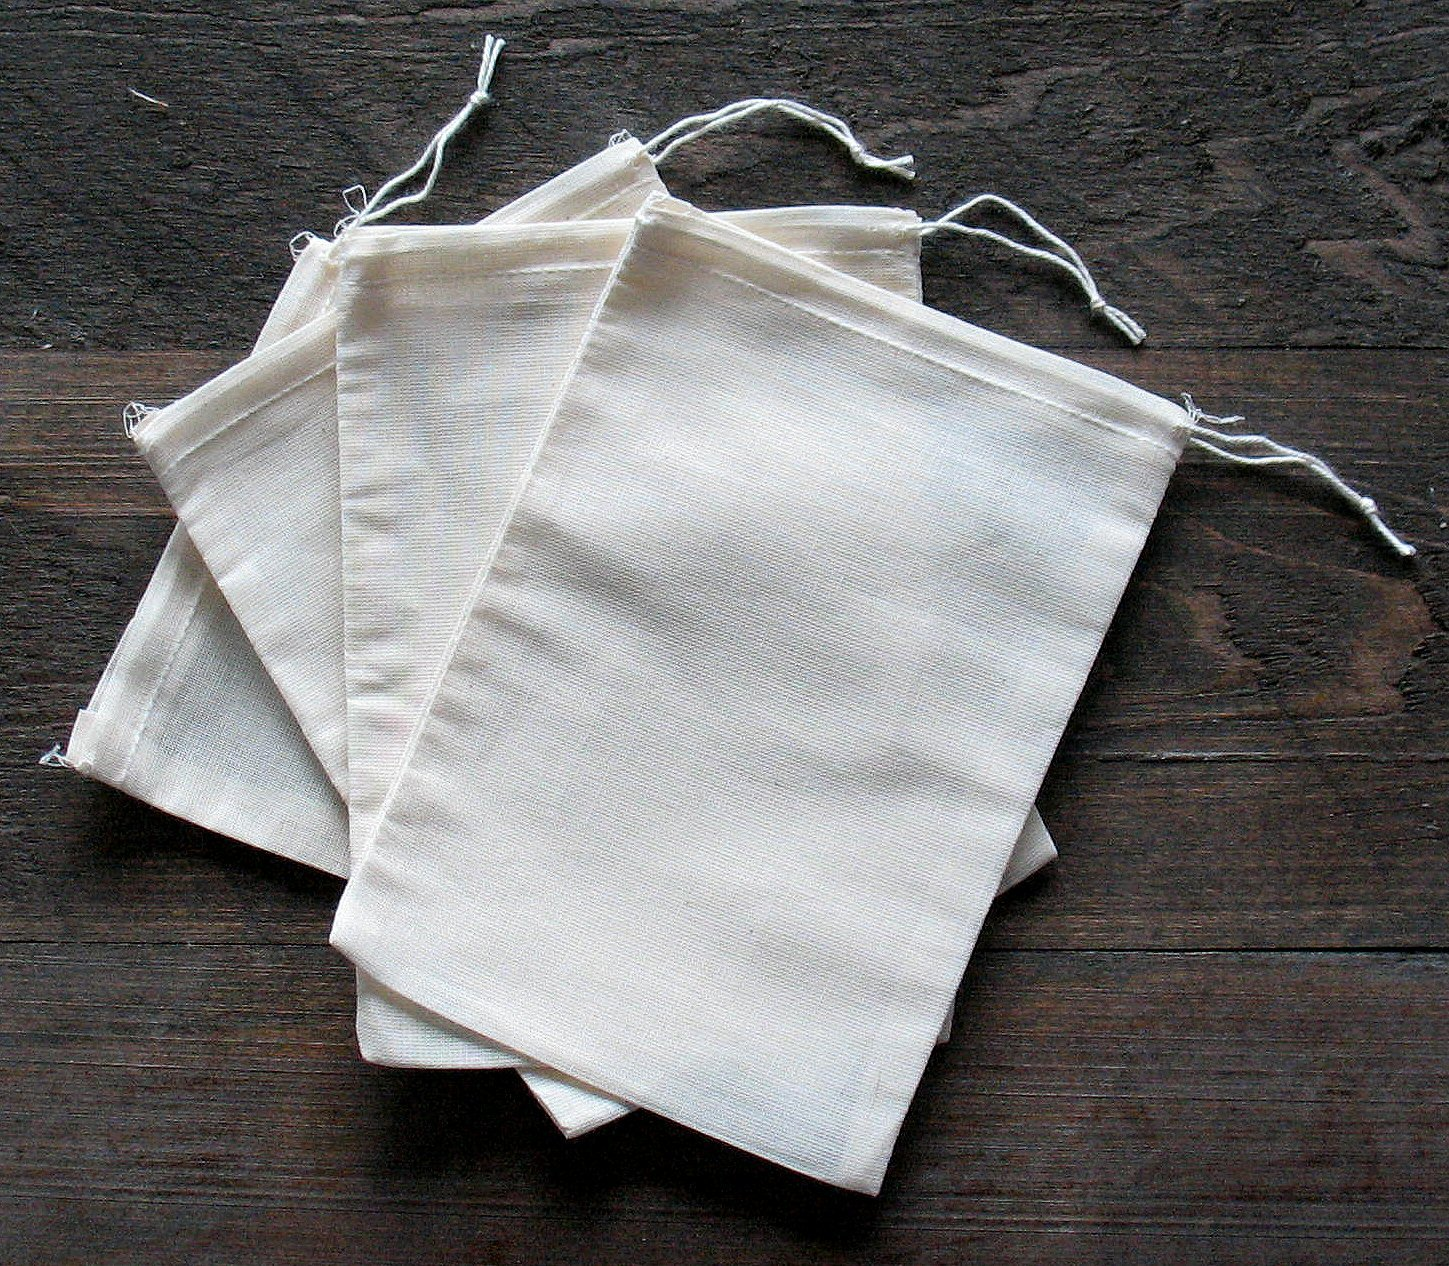 Amazon.com: Cotton Muslin Bags 5x7 Inches 25 Count Pack: Health ...